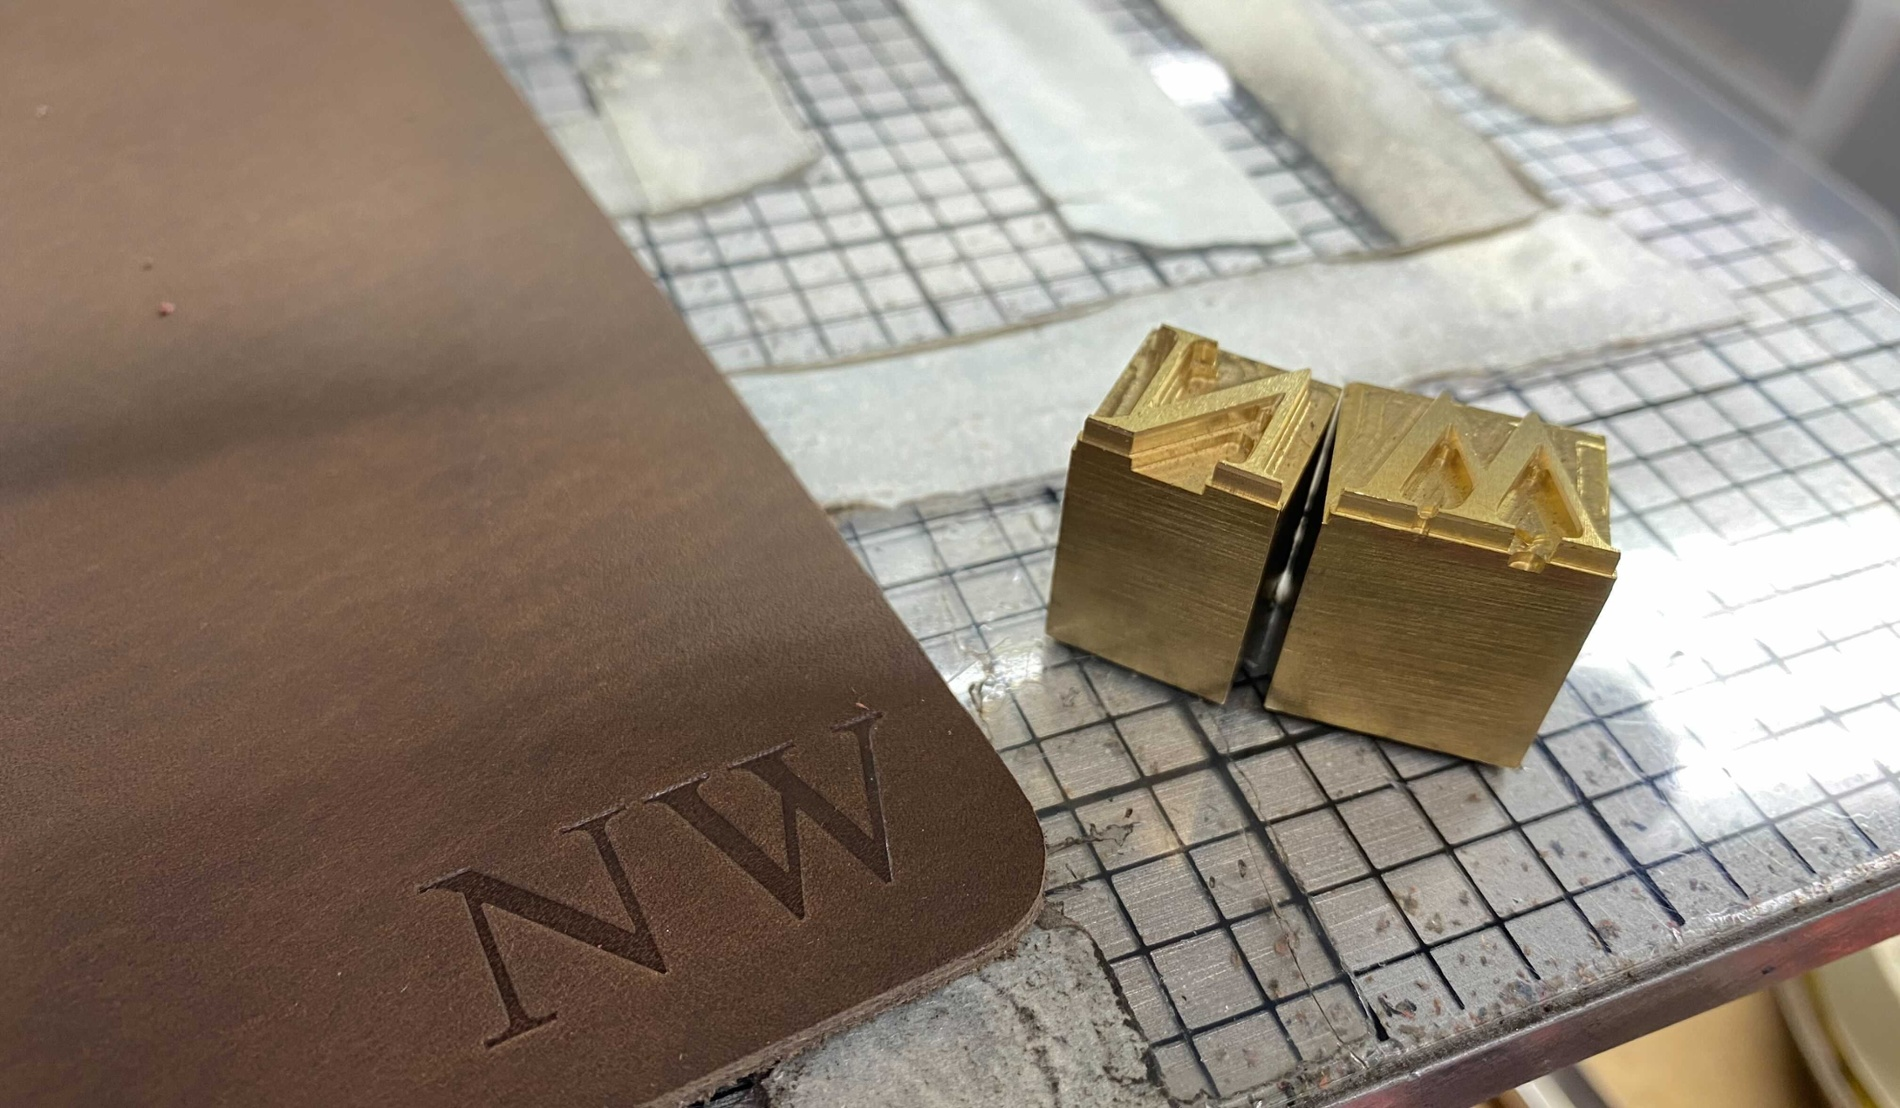 Personalizing Leather Goods with Brass Printers' Type